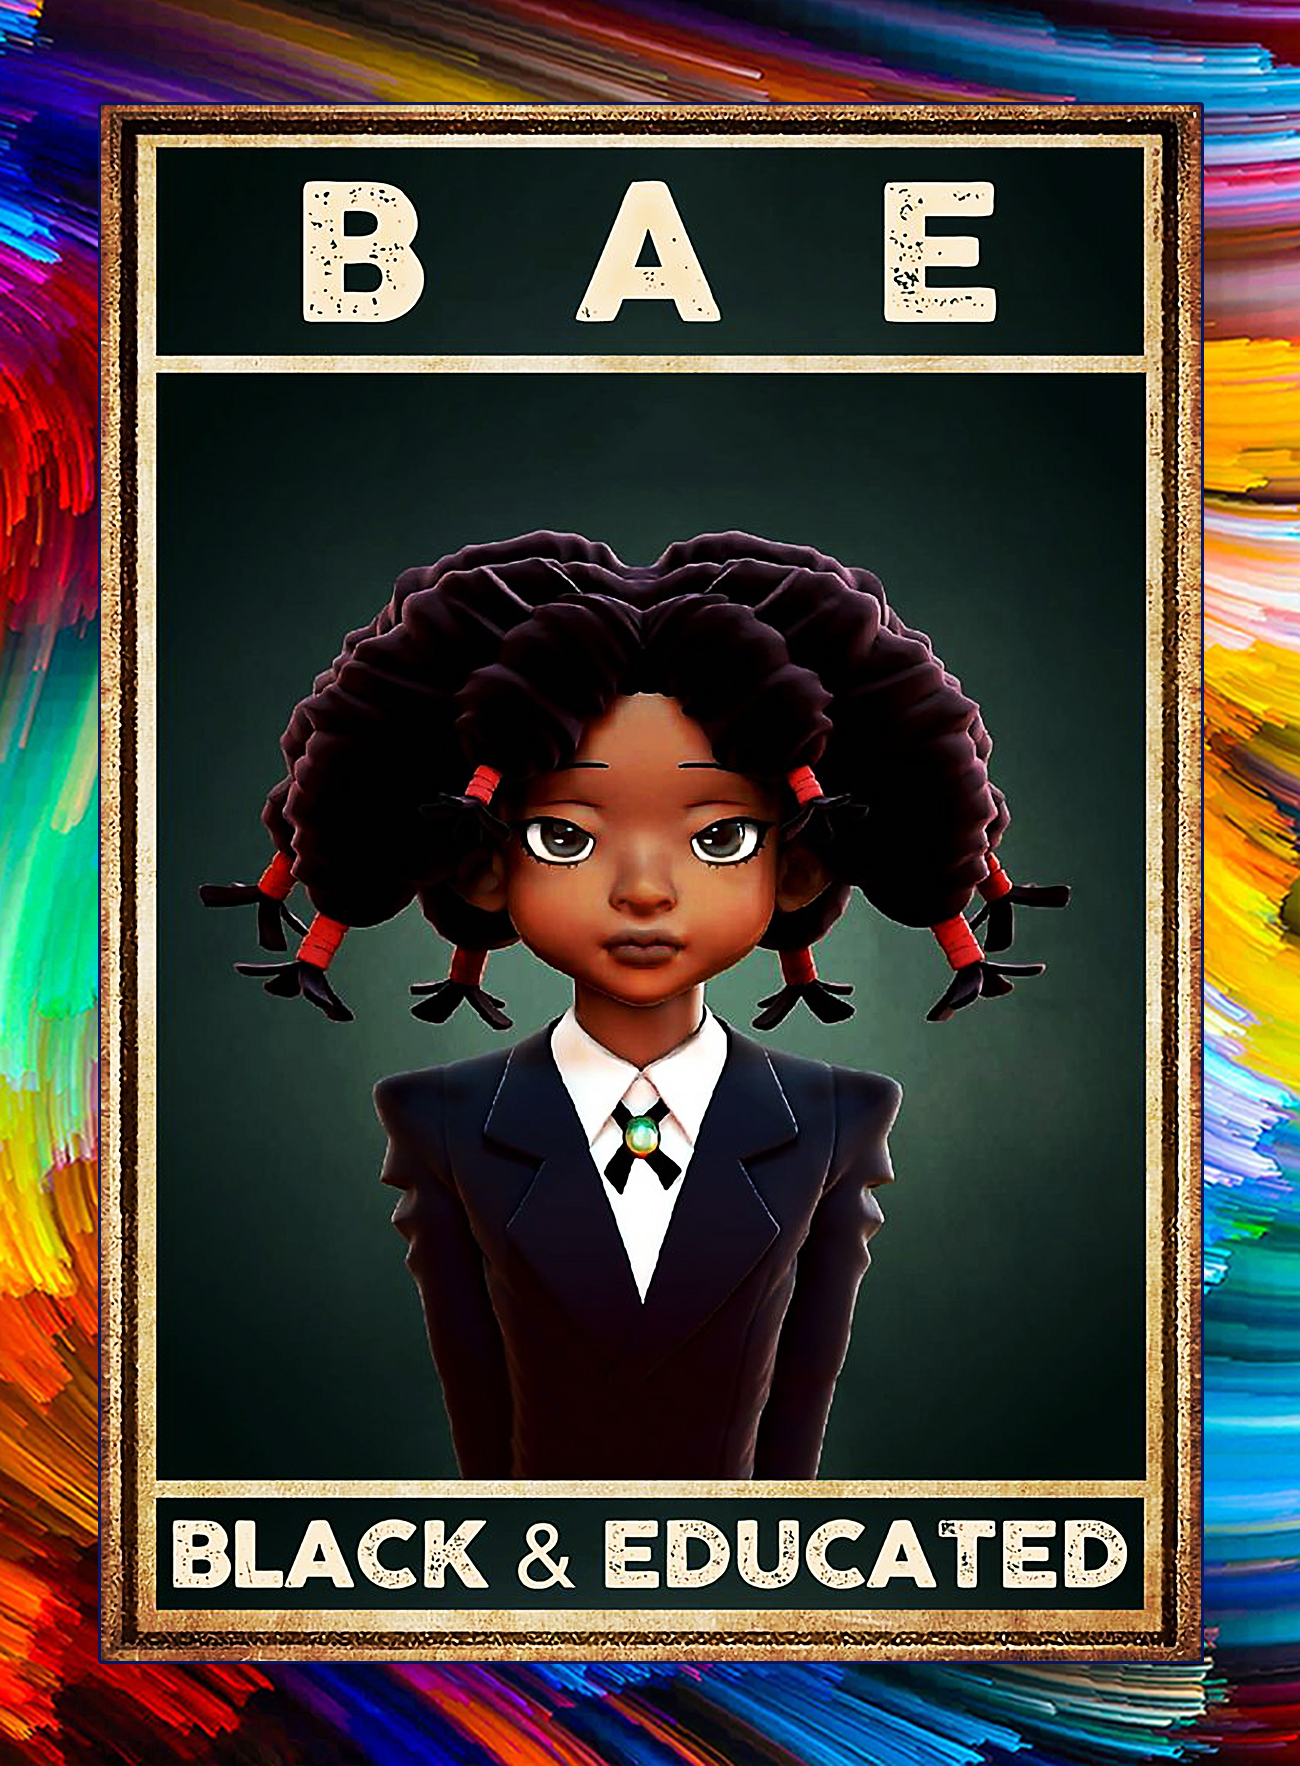 Black and educated poster